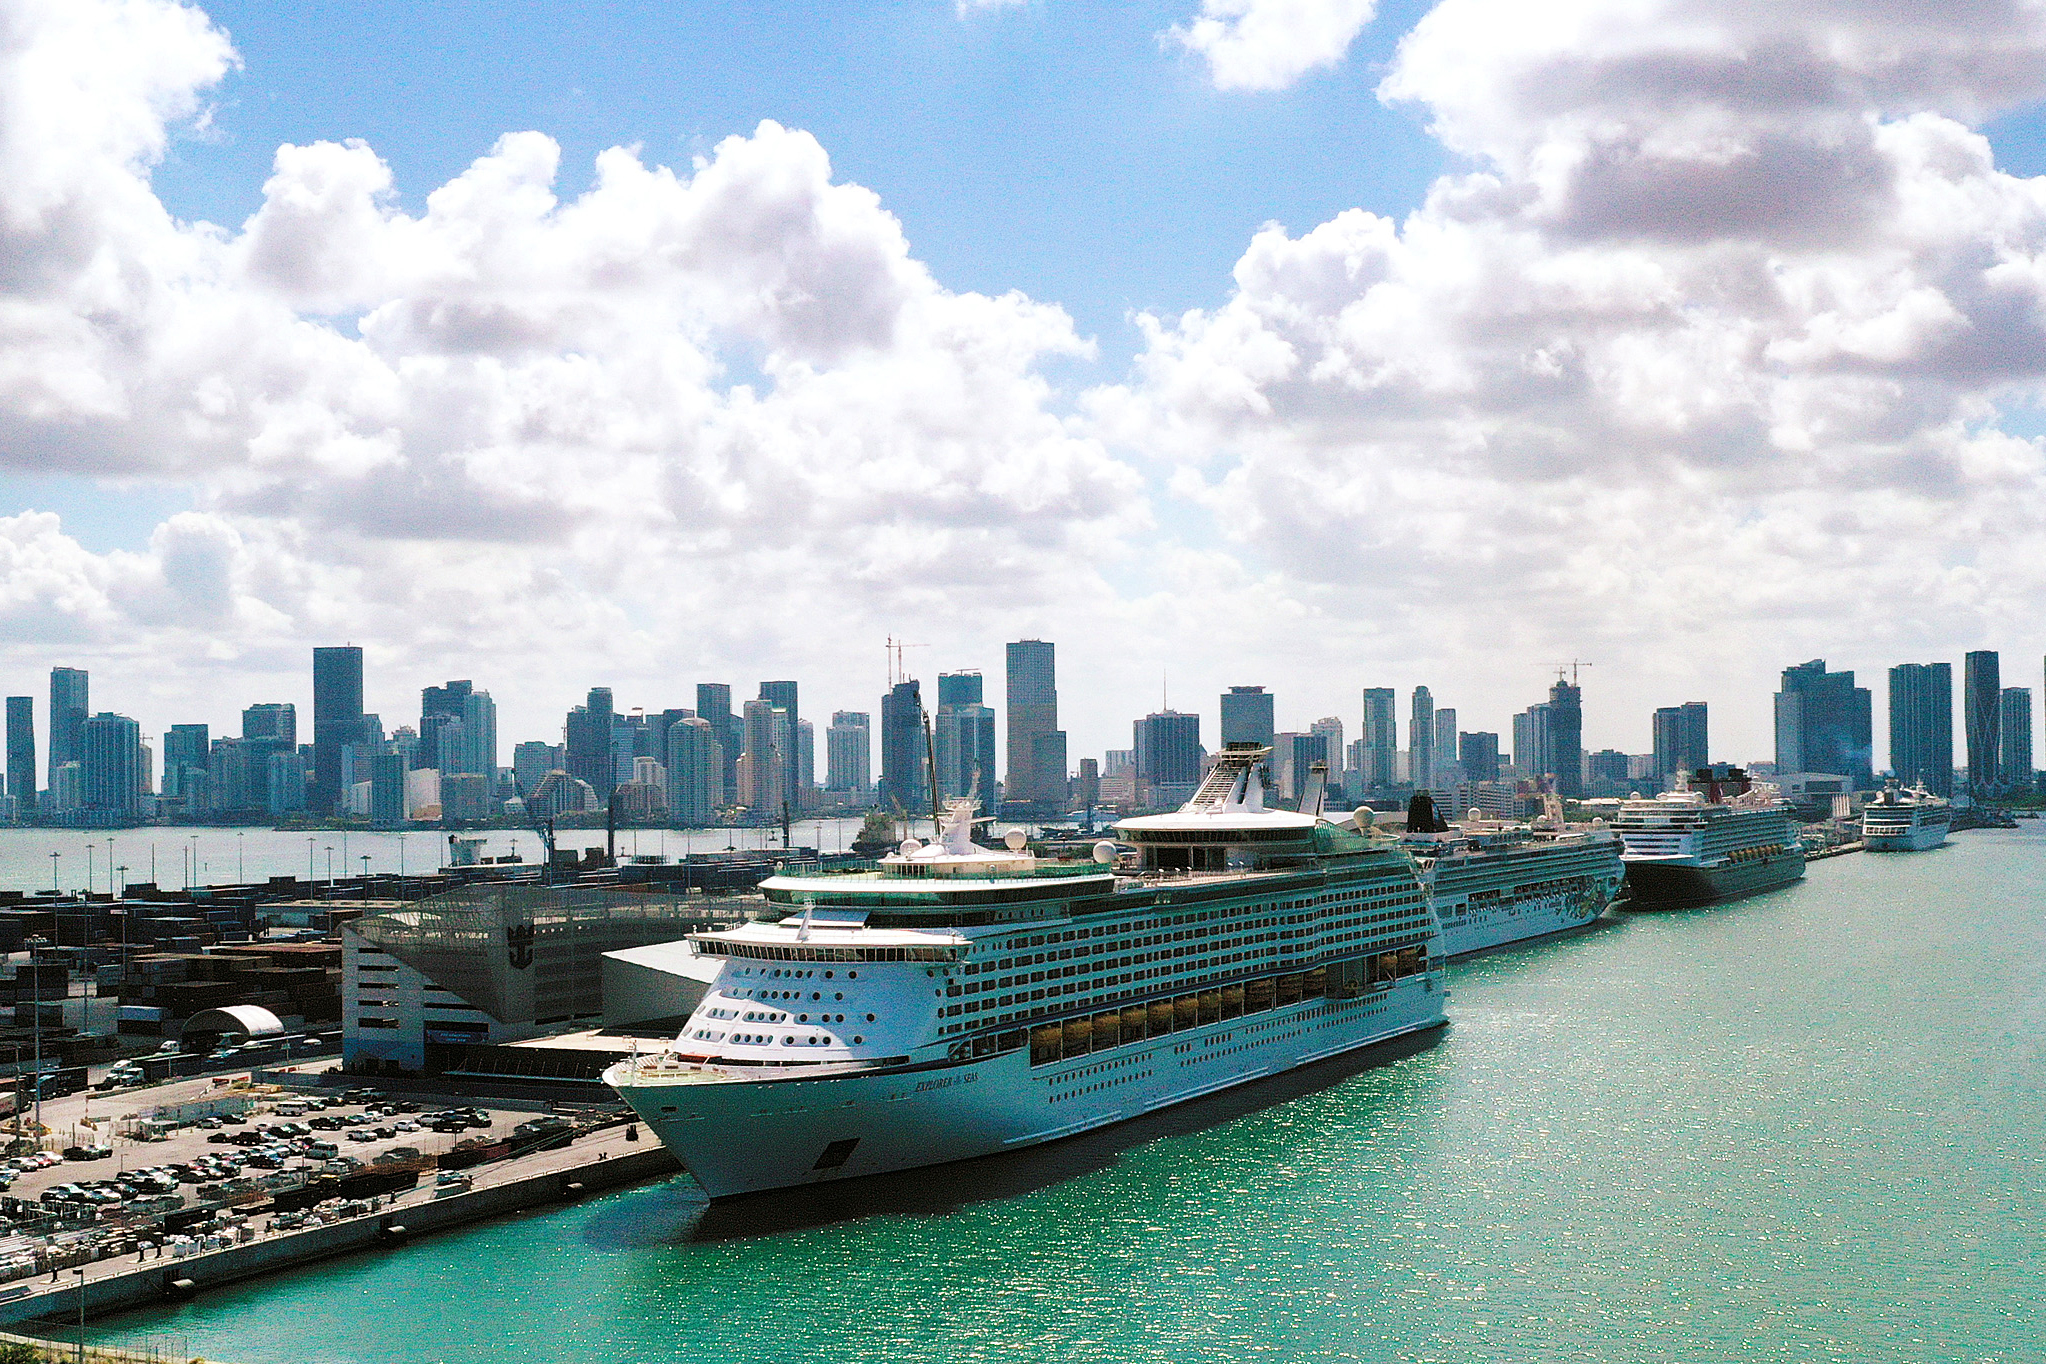 Florida judge allows cruise line to require proof of vaccination despite state ban